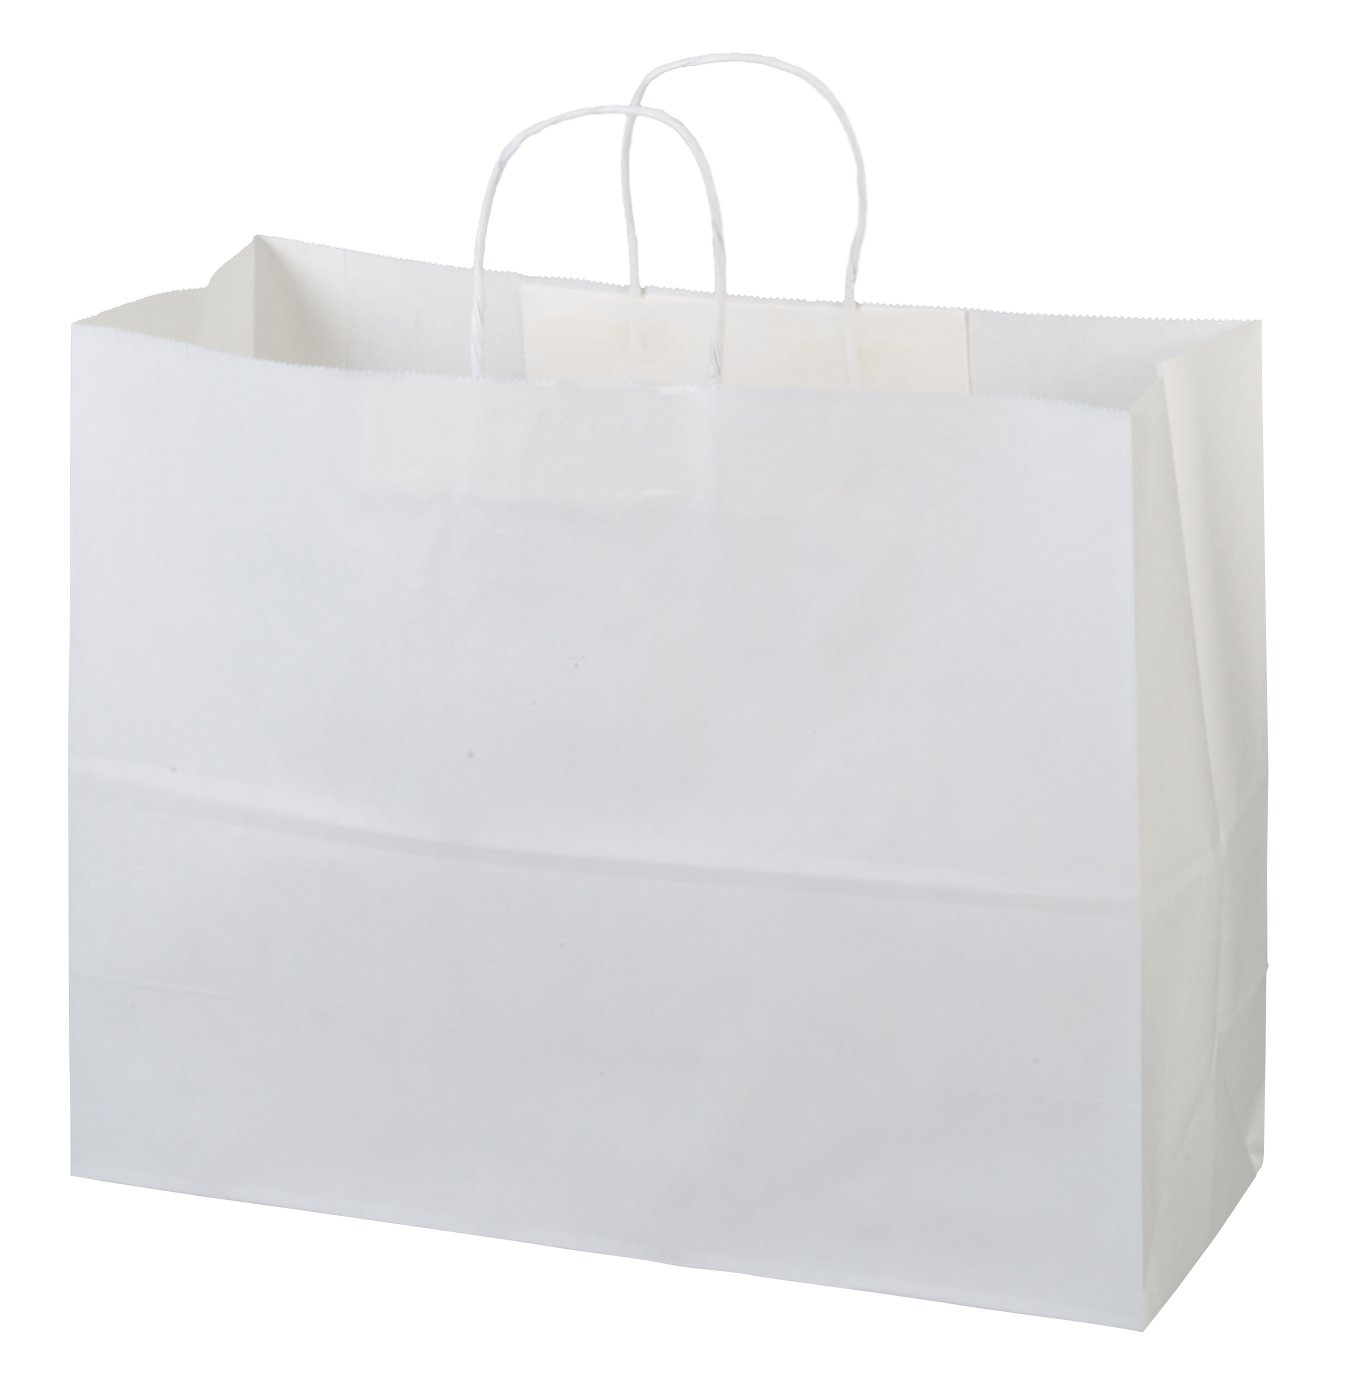 Flexicore Packaging 16''x6''x12'' - 100 Pcs -White Kraft Paper Bags, Shopping, Merchandise, Party, Gift Bags by Flexicore Packaging